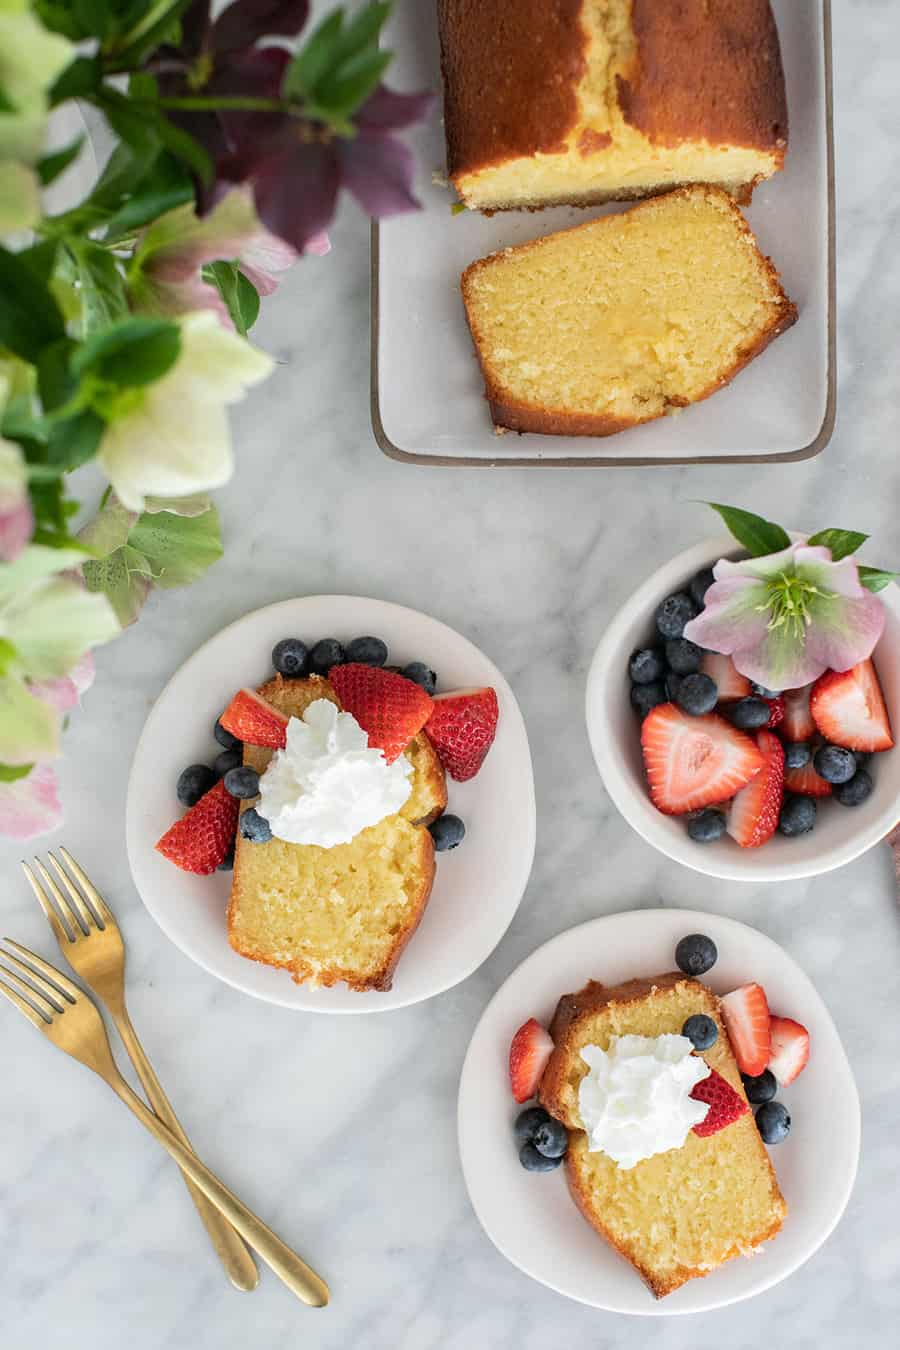 Pound cake on plate sliced with whipped cream and strawberries